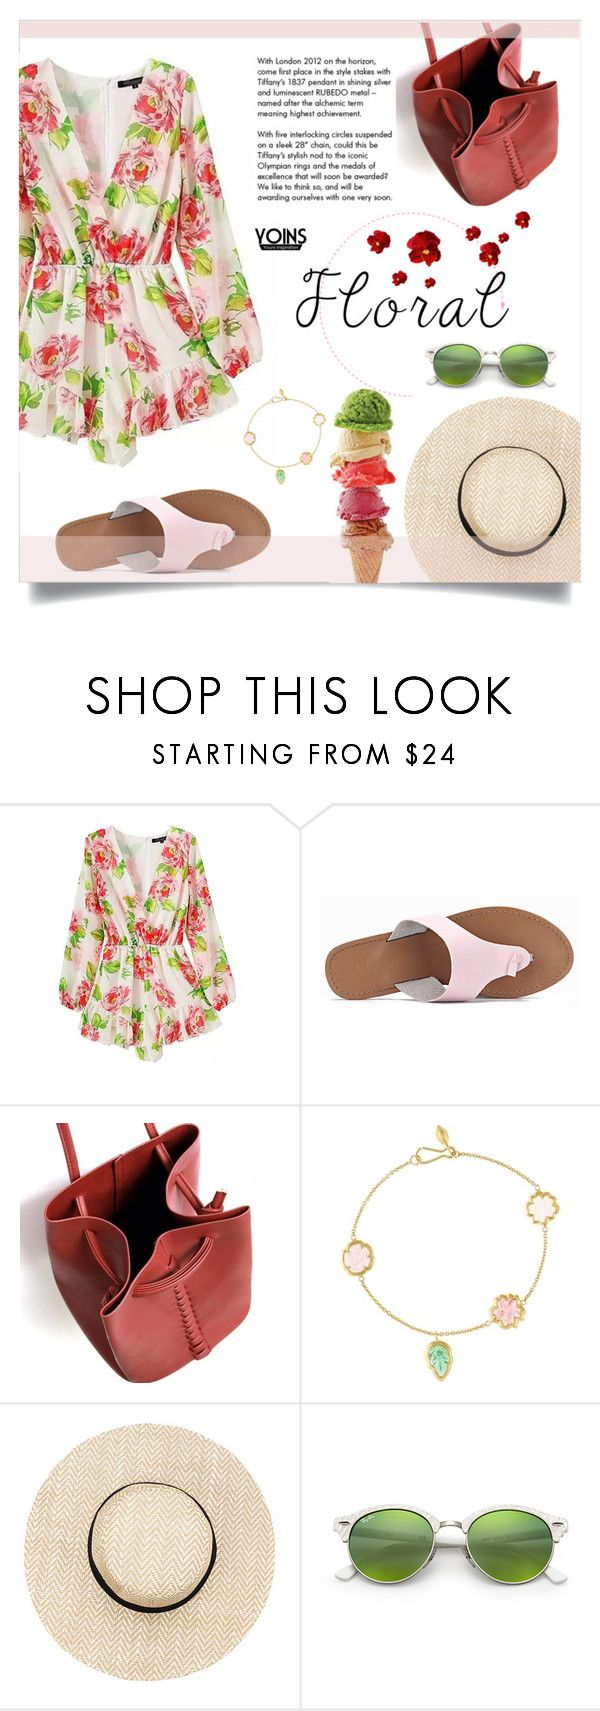 """""""Yoins 9/30 : Floral"""" by millilolly ❤ liked on Polyvore featuring Pippa Small, Tiffany & Co., Ray-Ban, yoins, yoinscollection and loveyoins"""